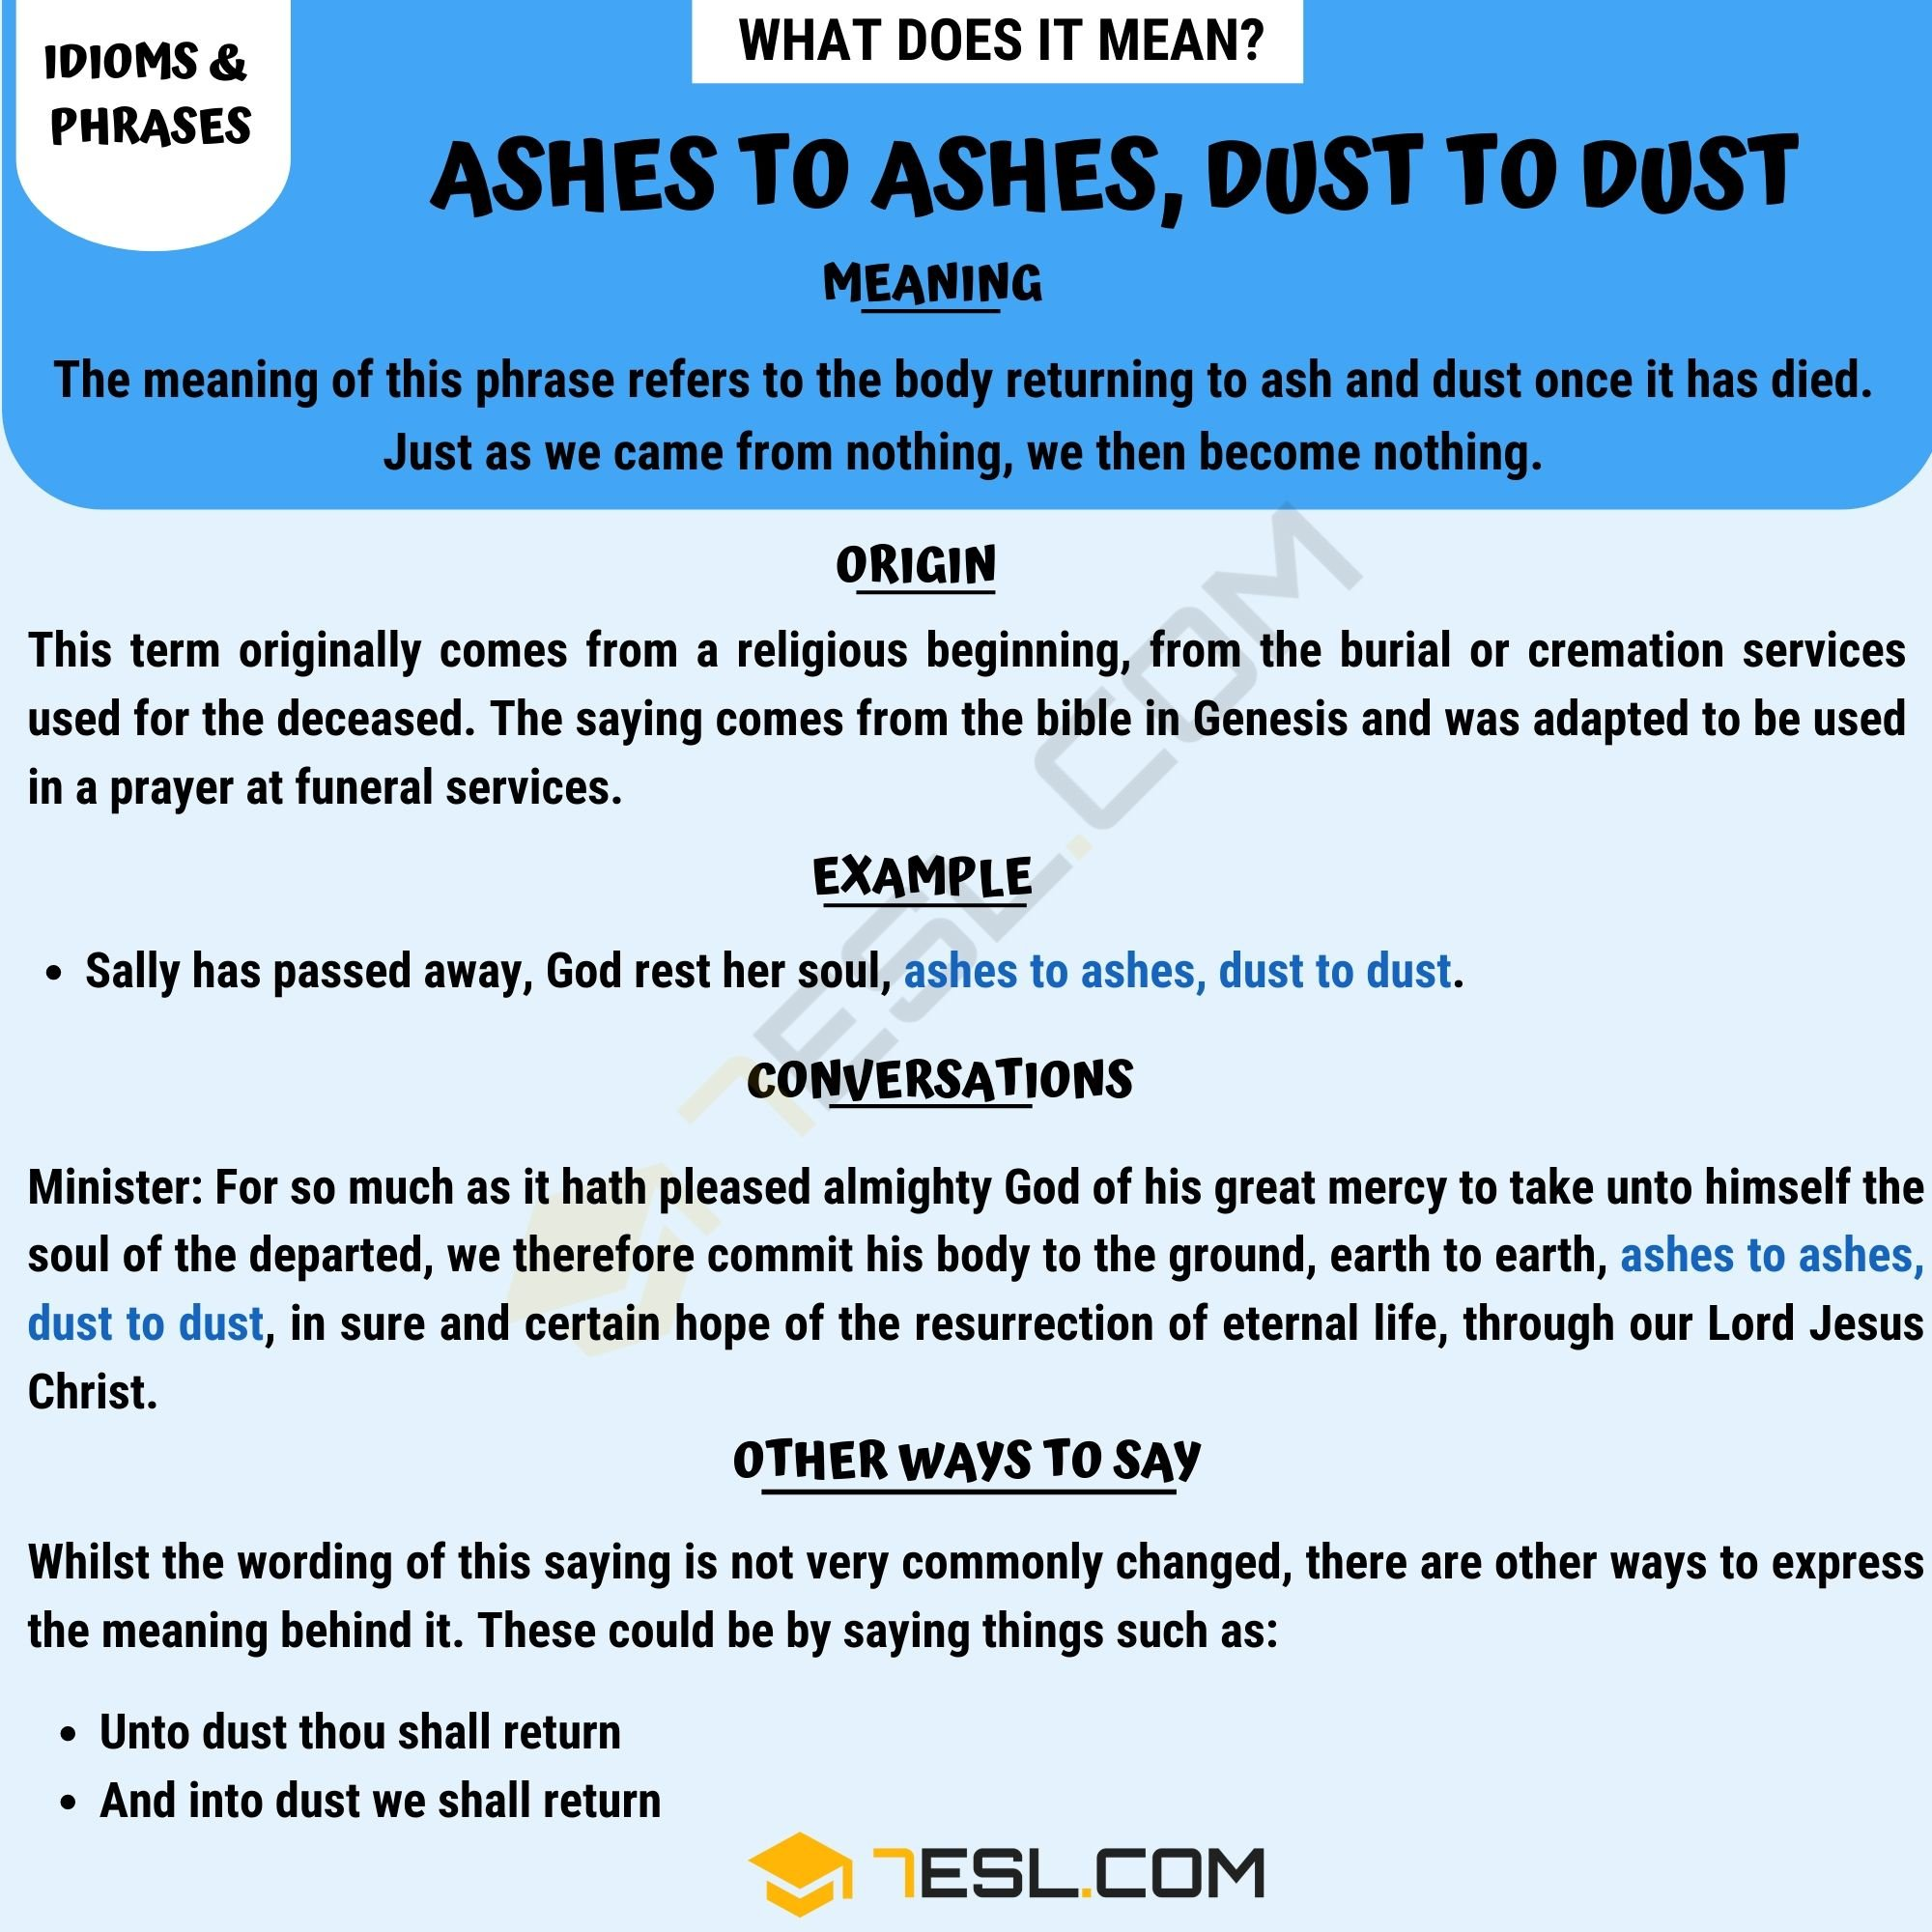 Ashes to Ashes, Dust to Dust